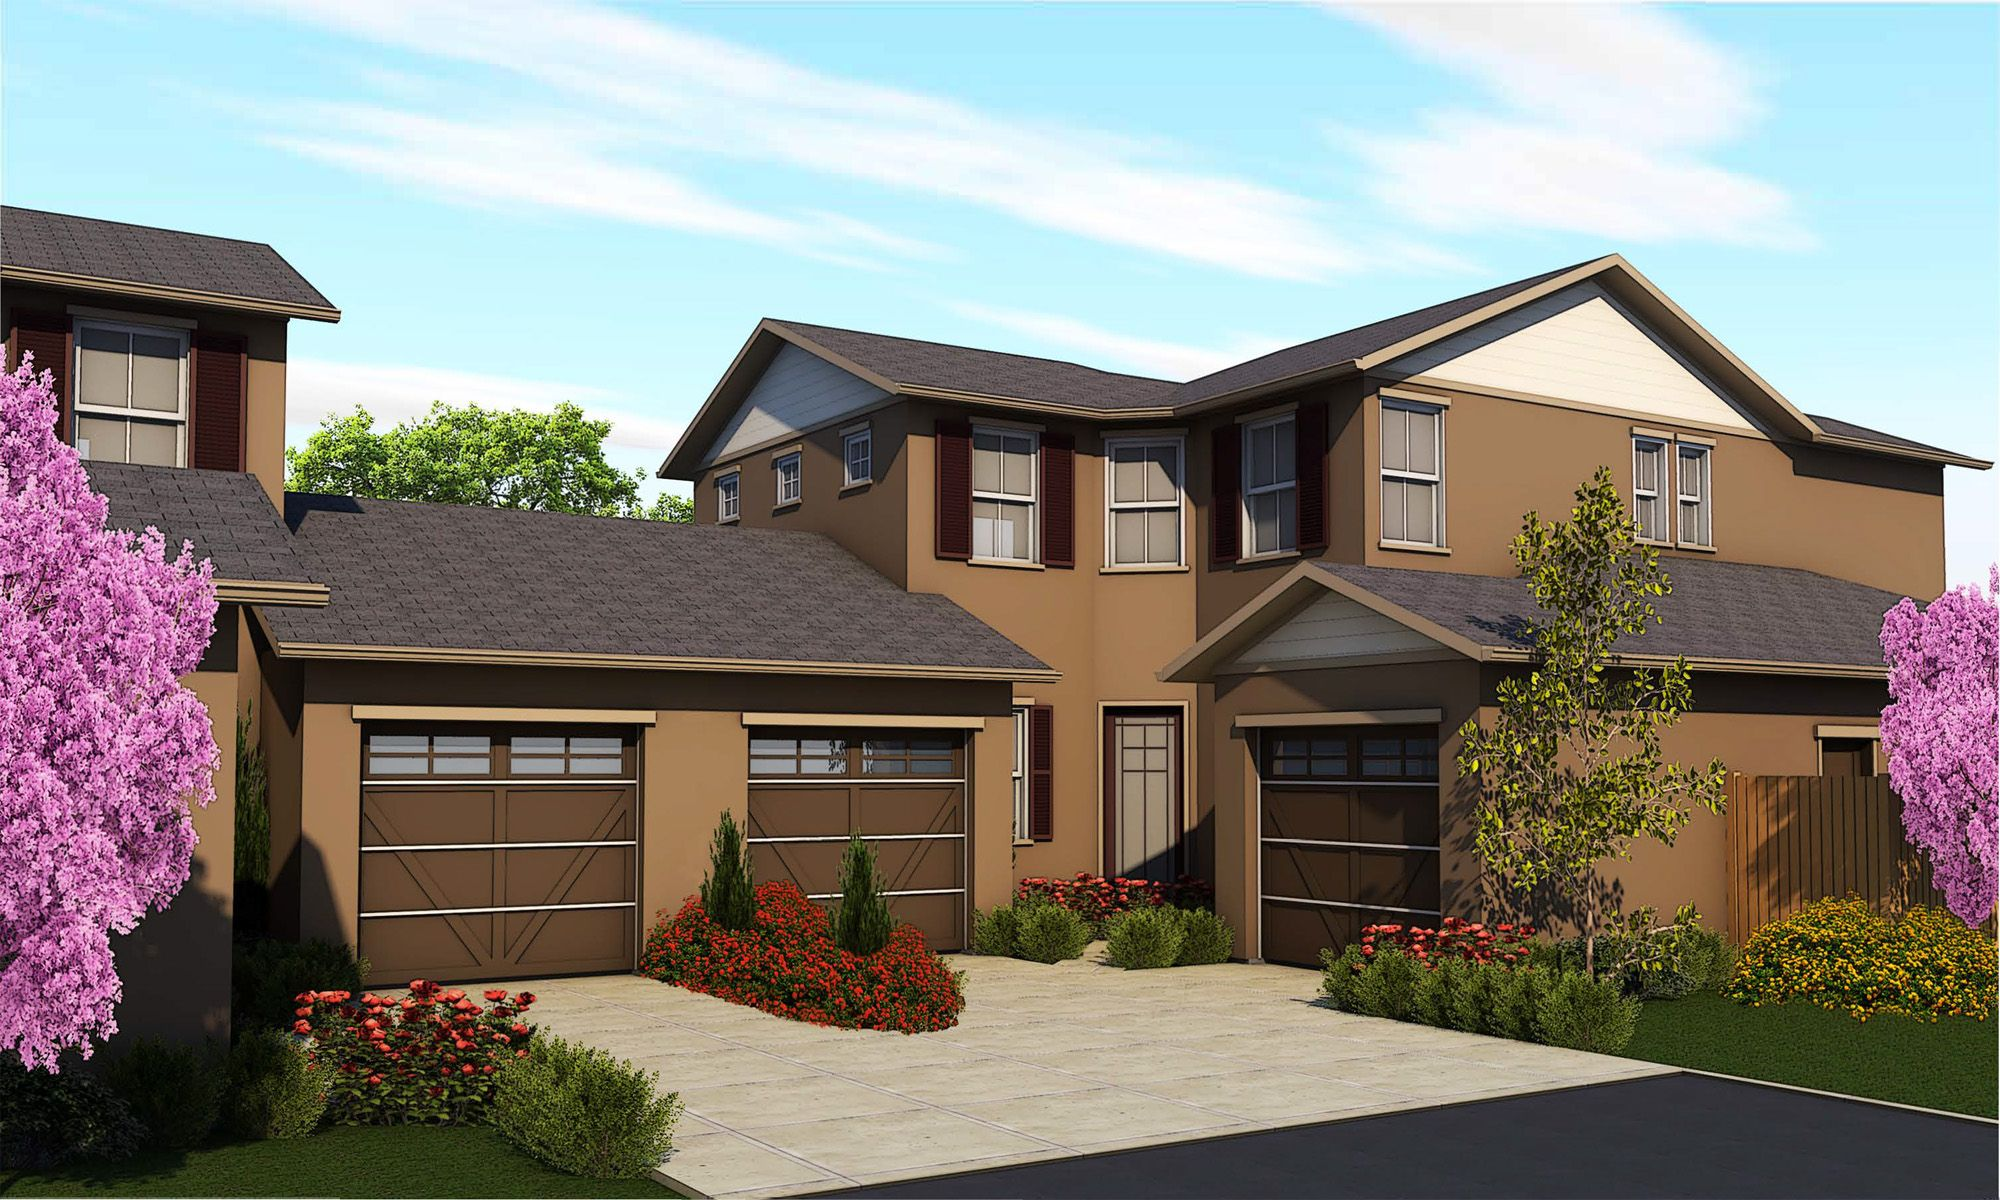 New Homes in Turlock, CA | 205 New Homes | NewHomeSource